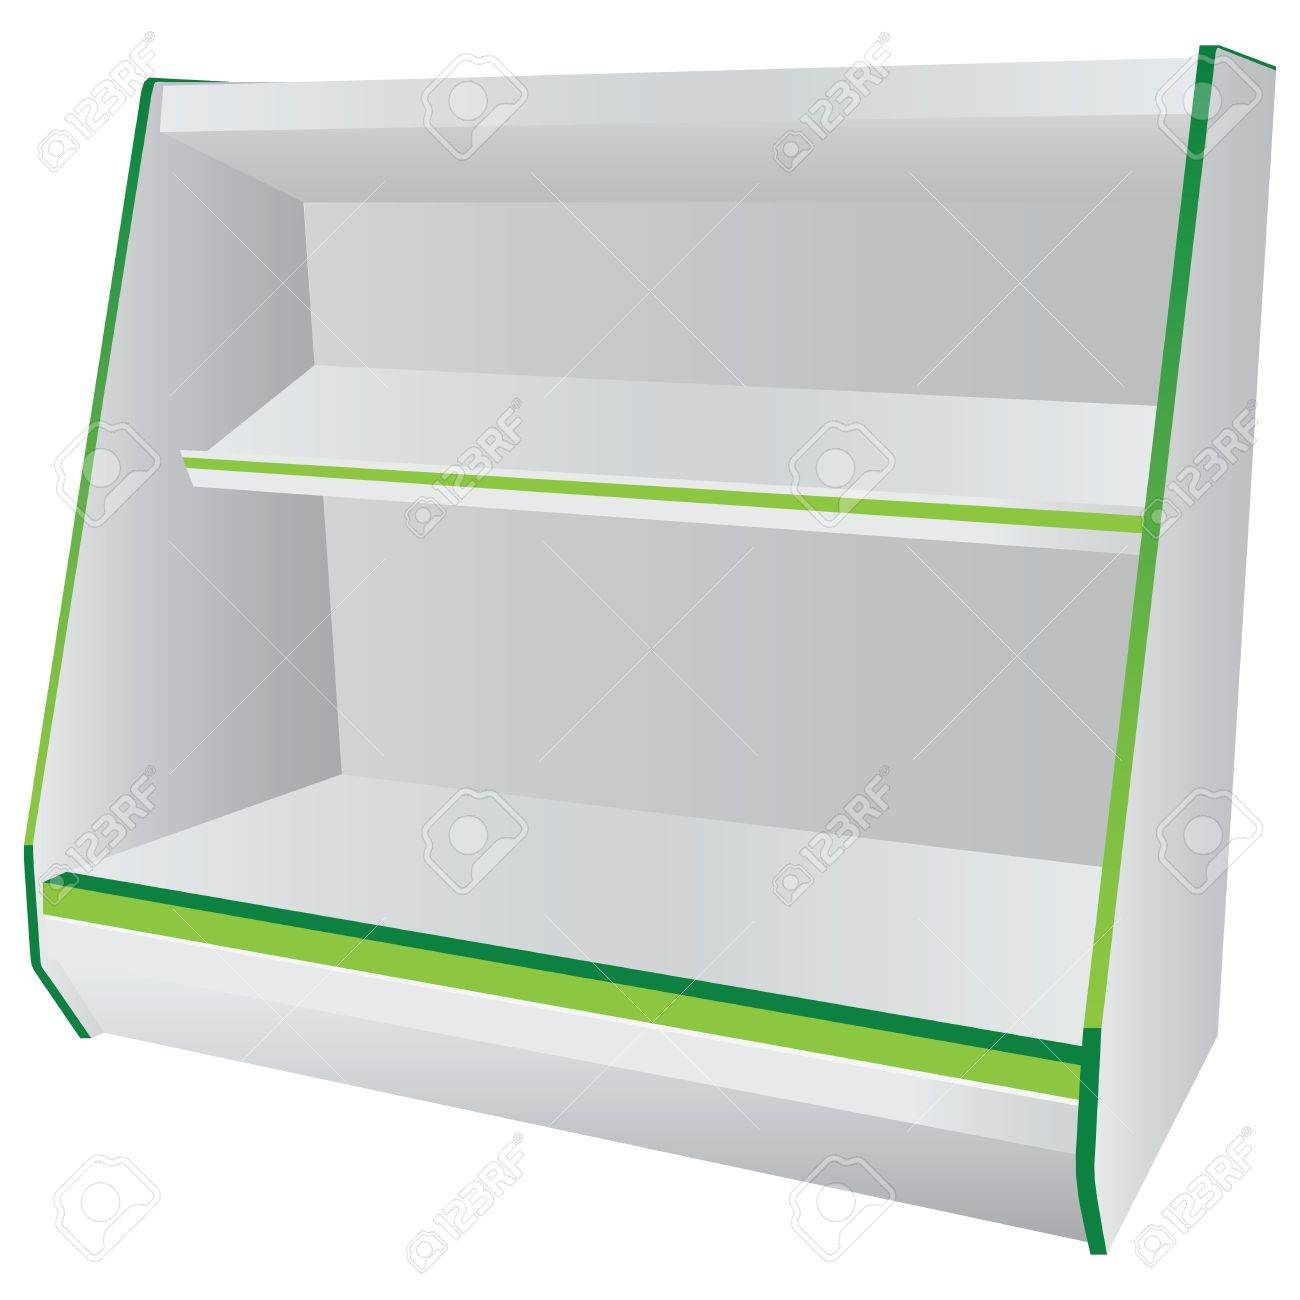 Commercial shelving with hanging shelves. Vector illustration. Stock Vector - 18953590